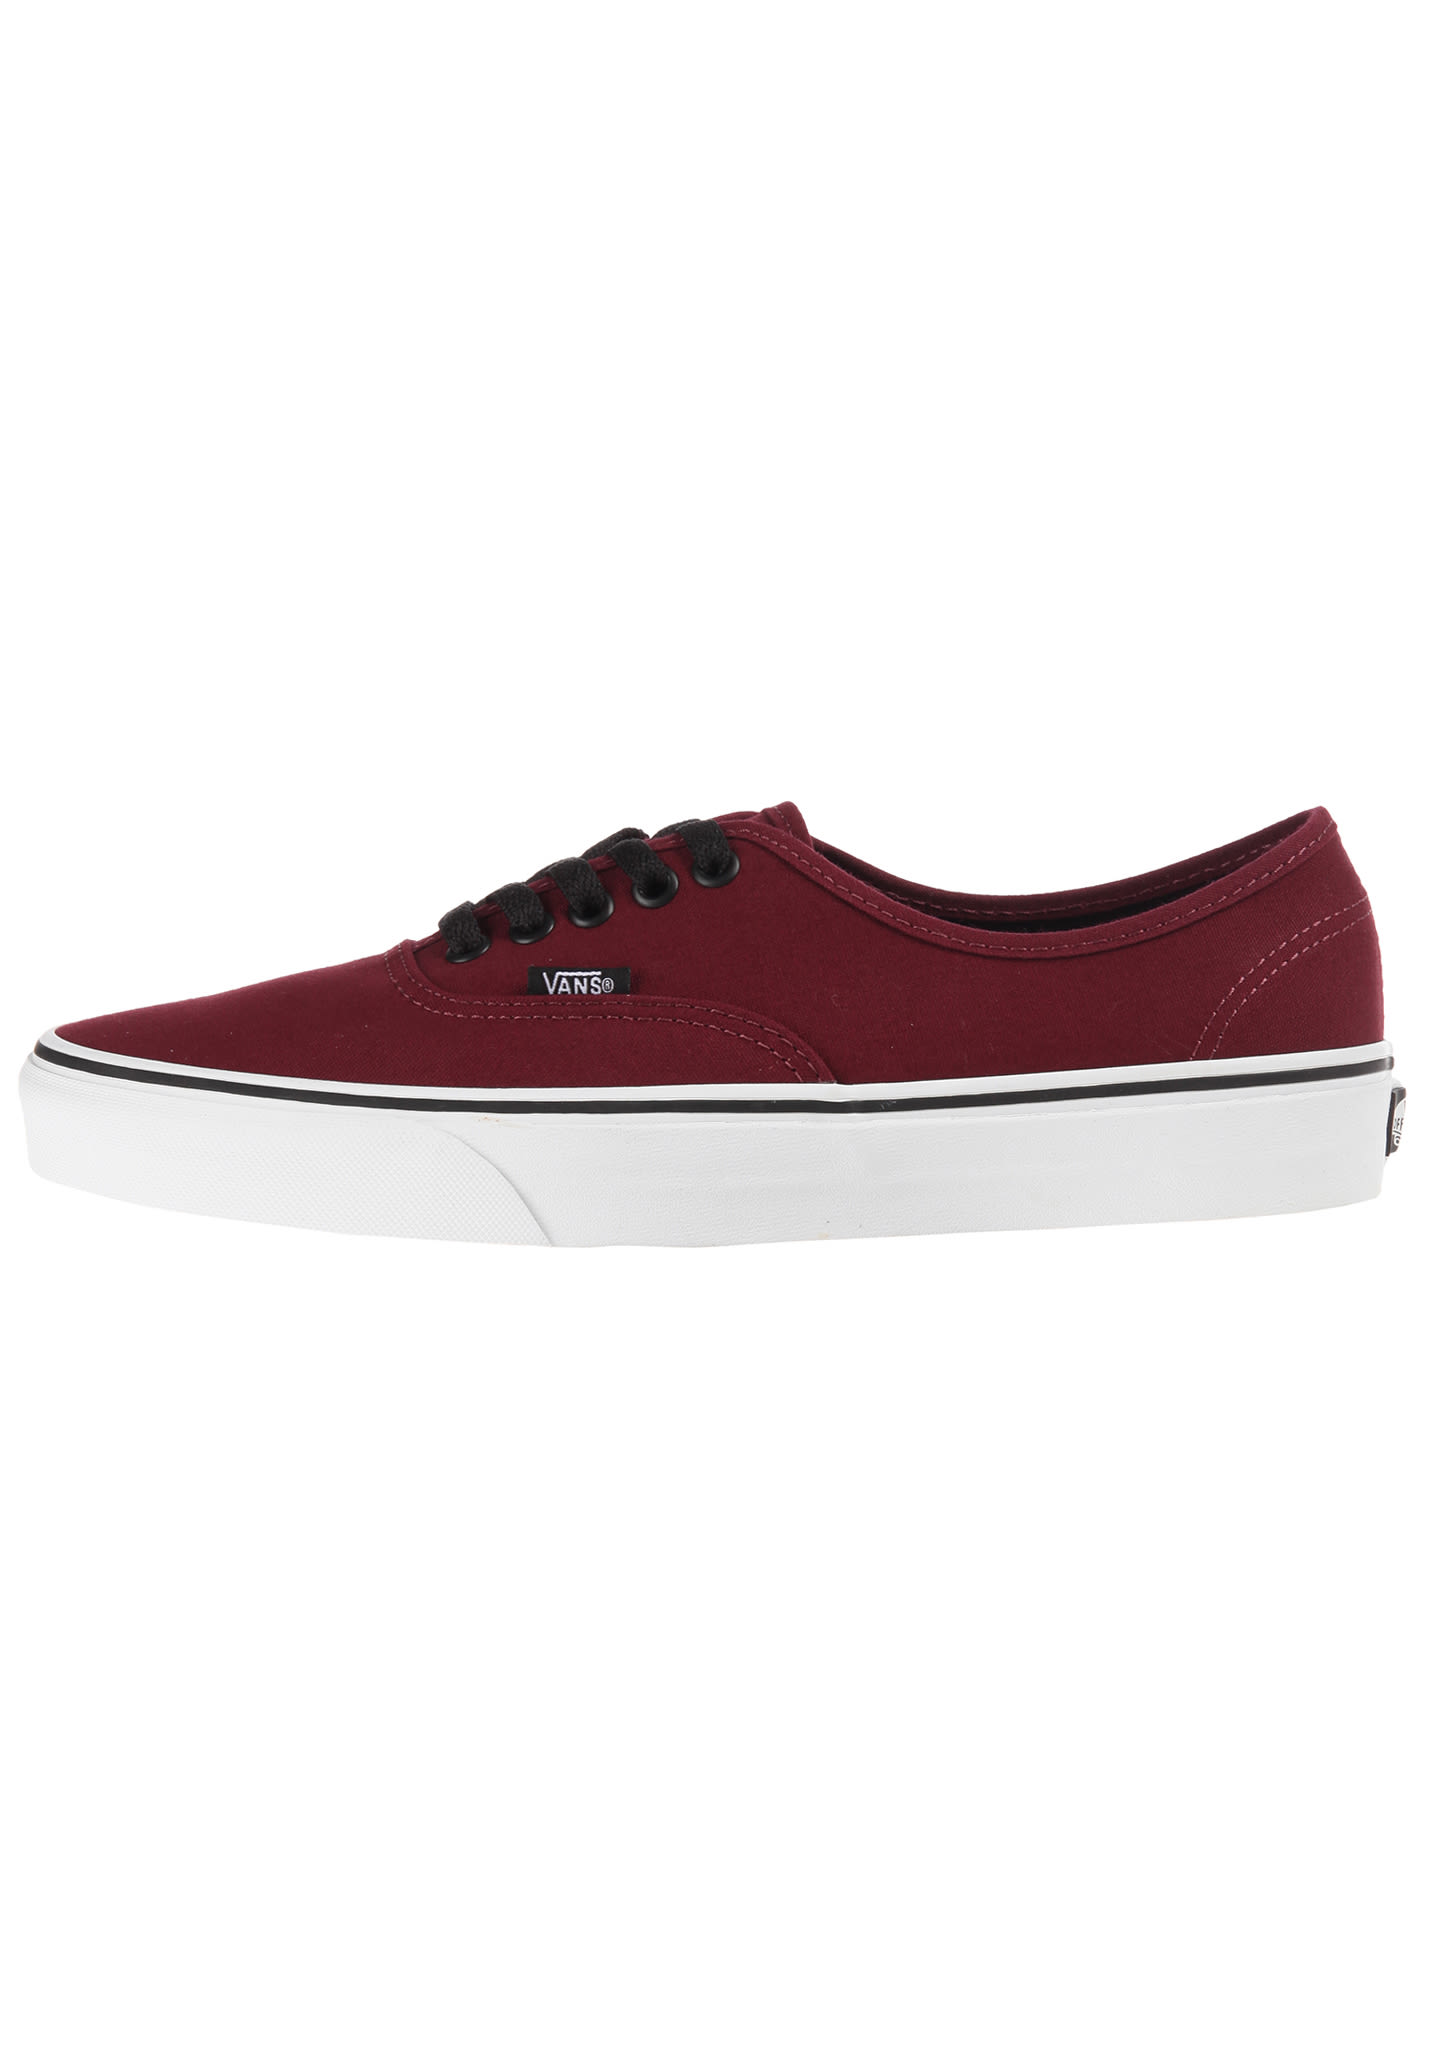 VANS Authentic - Sneaker - Rot